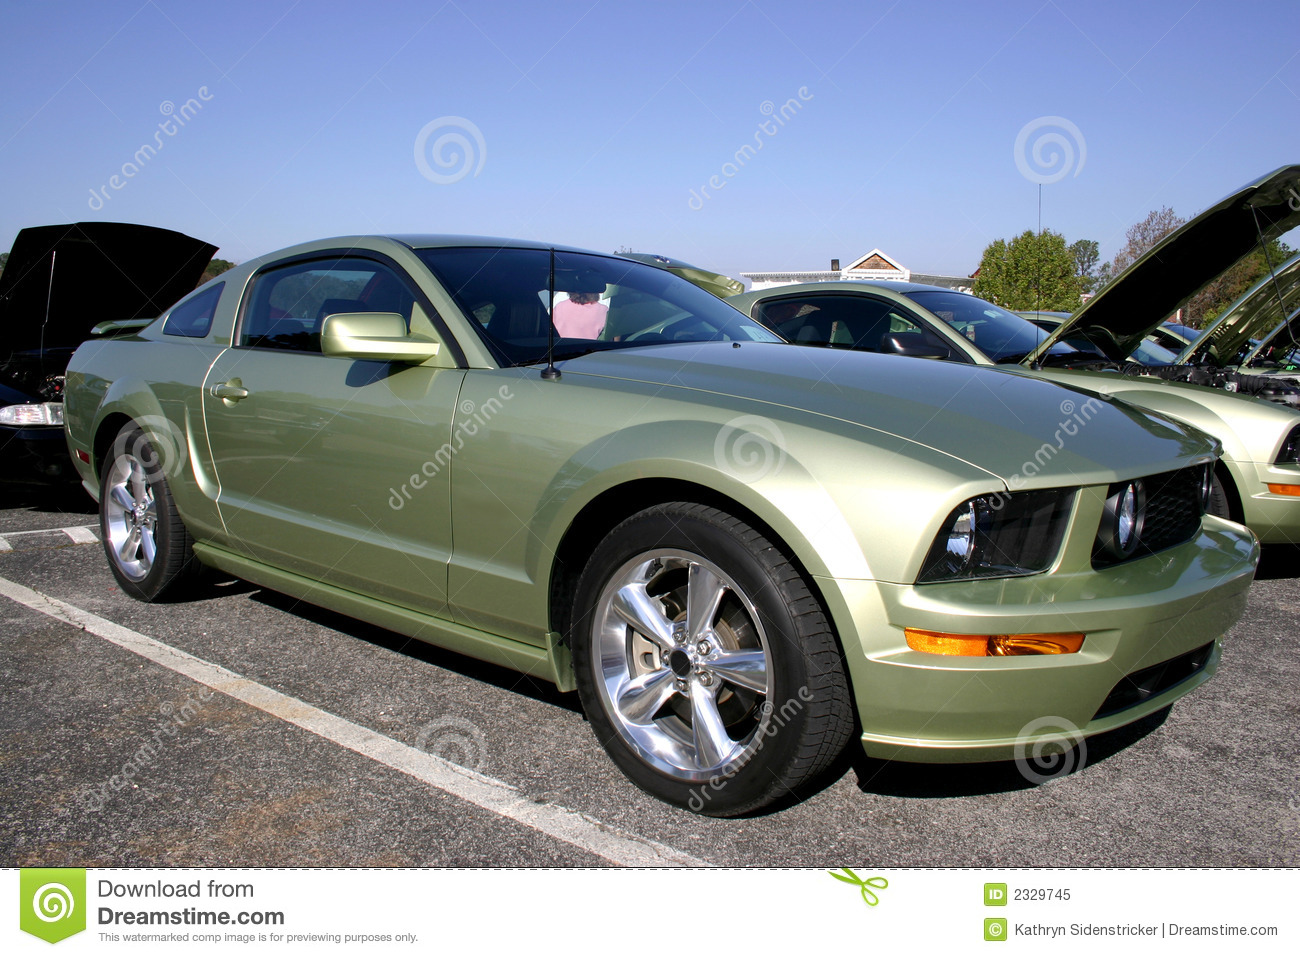 2005 ford mustang gt stock image image of auto pony. Black Bedroom Furniture Sets. Home Design Ideas